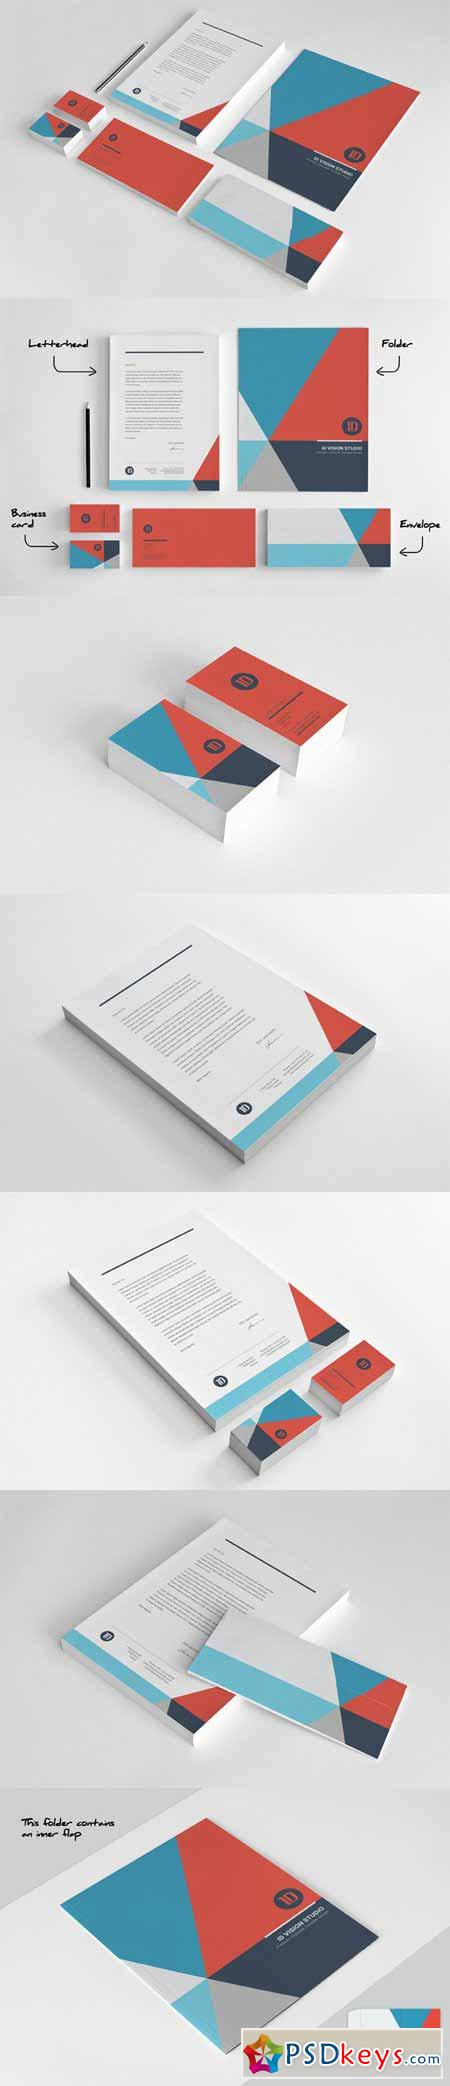 Stationery Corporate Identity 003 446454